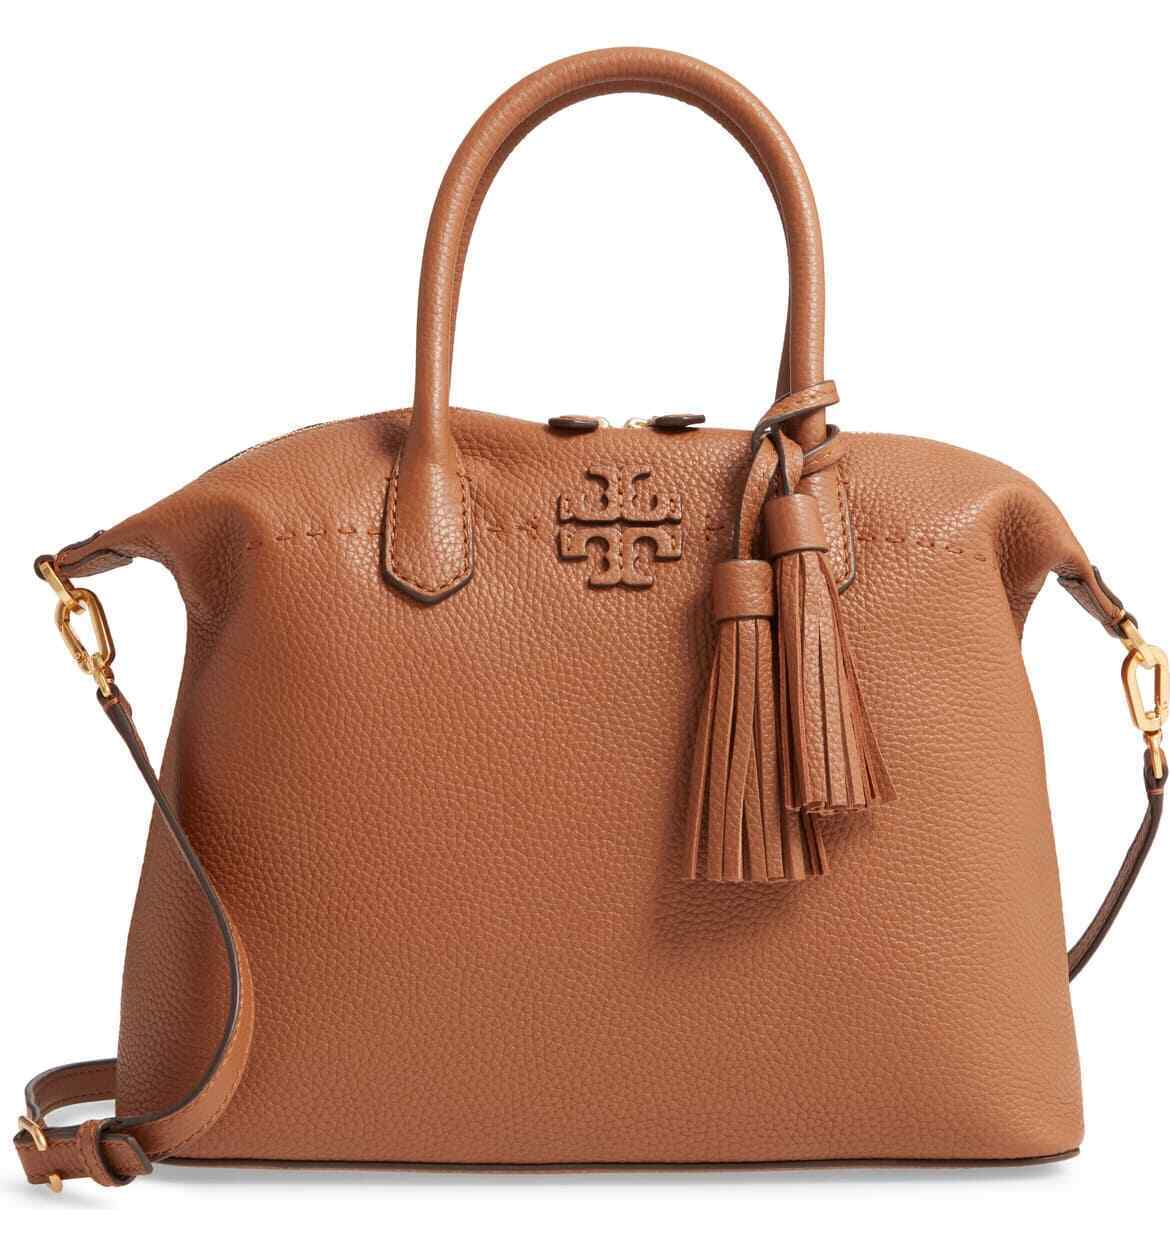 NWT TORY BURCH MCGRAW PEBBLED LEATHER SLOUCHY SATCHEL MOOSE